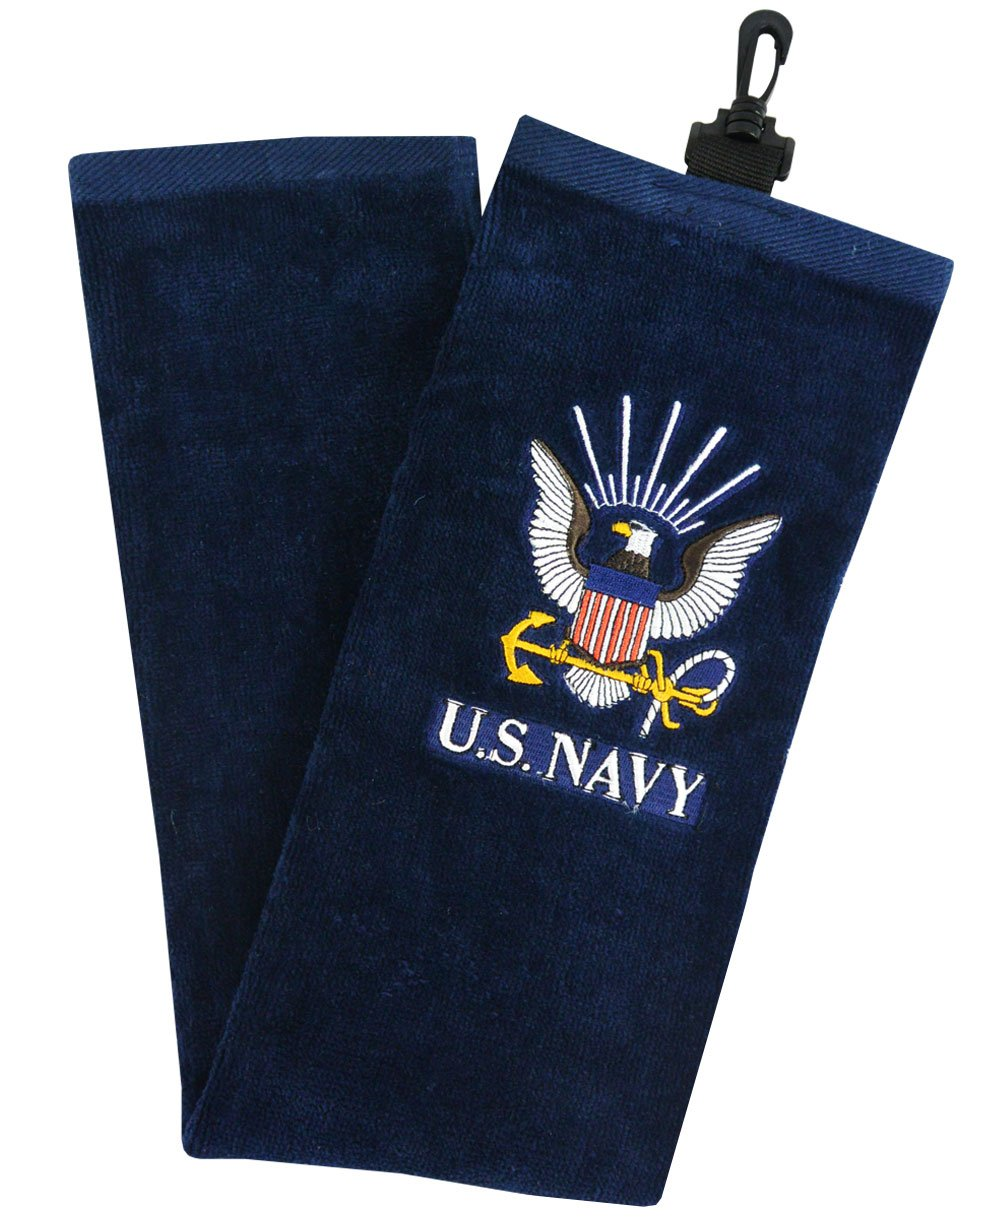 Hot-Z Golf US Military Navy Tri-Fold Towel